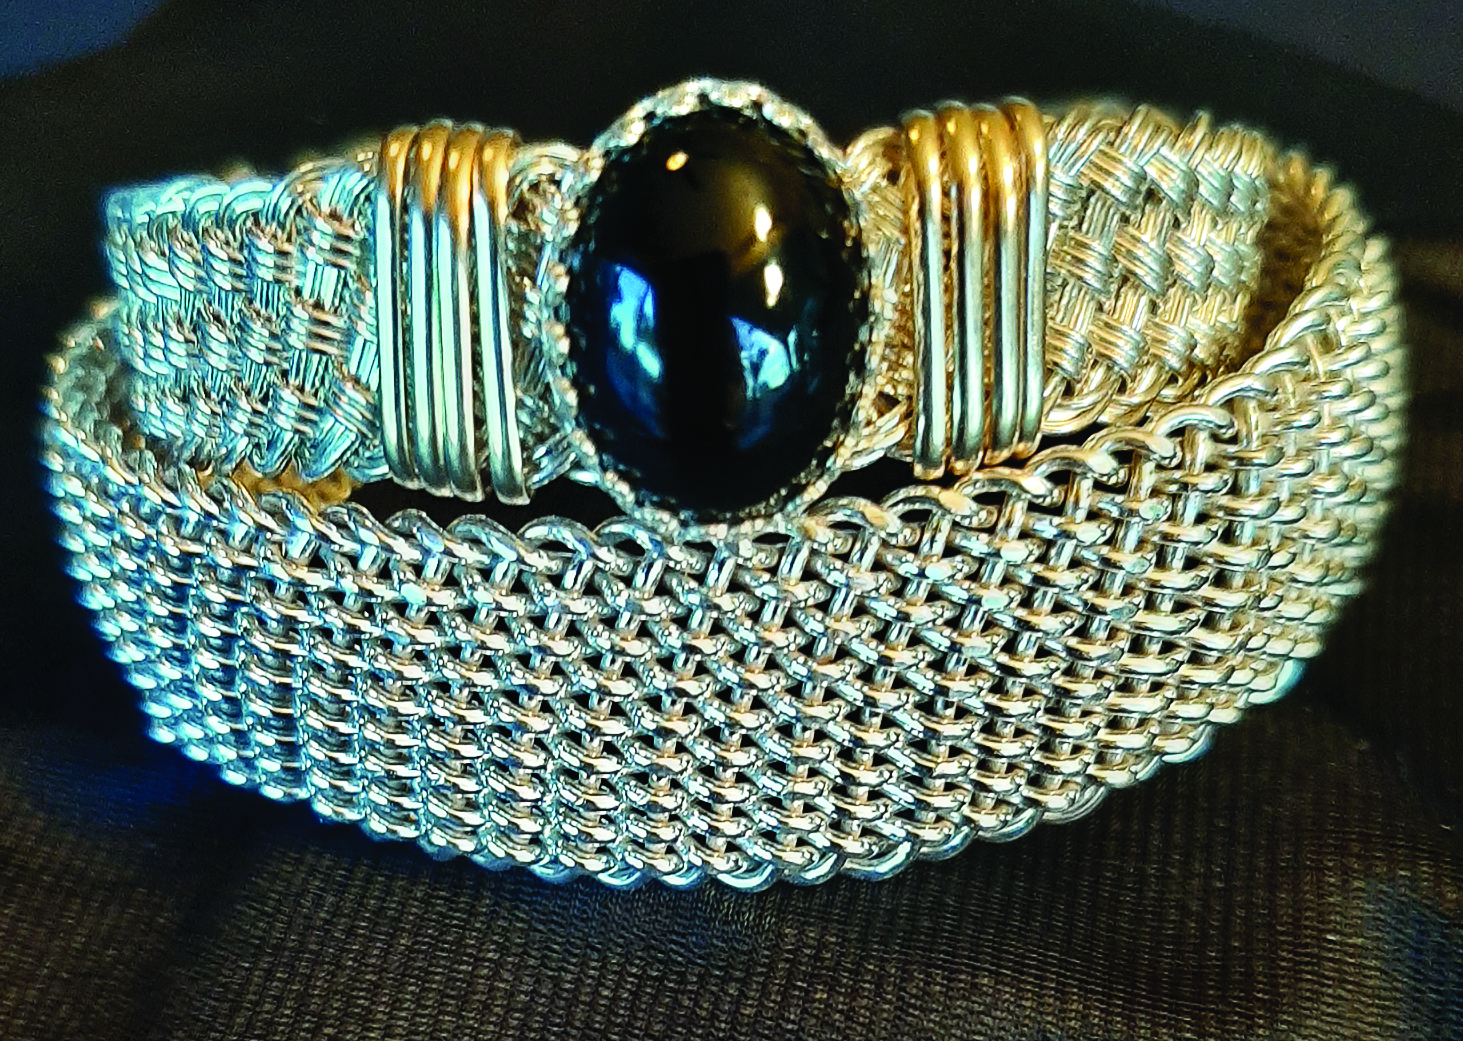 Bracelets by Henry Huss: The bottom is an 18-strand, 18-gauge, sterling silver wire weave. The top bracelet is a weave using 22-gauge sterling silver wire with gold wrap and an onyx stone.